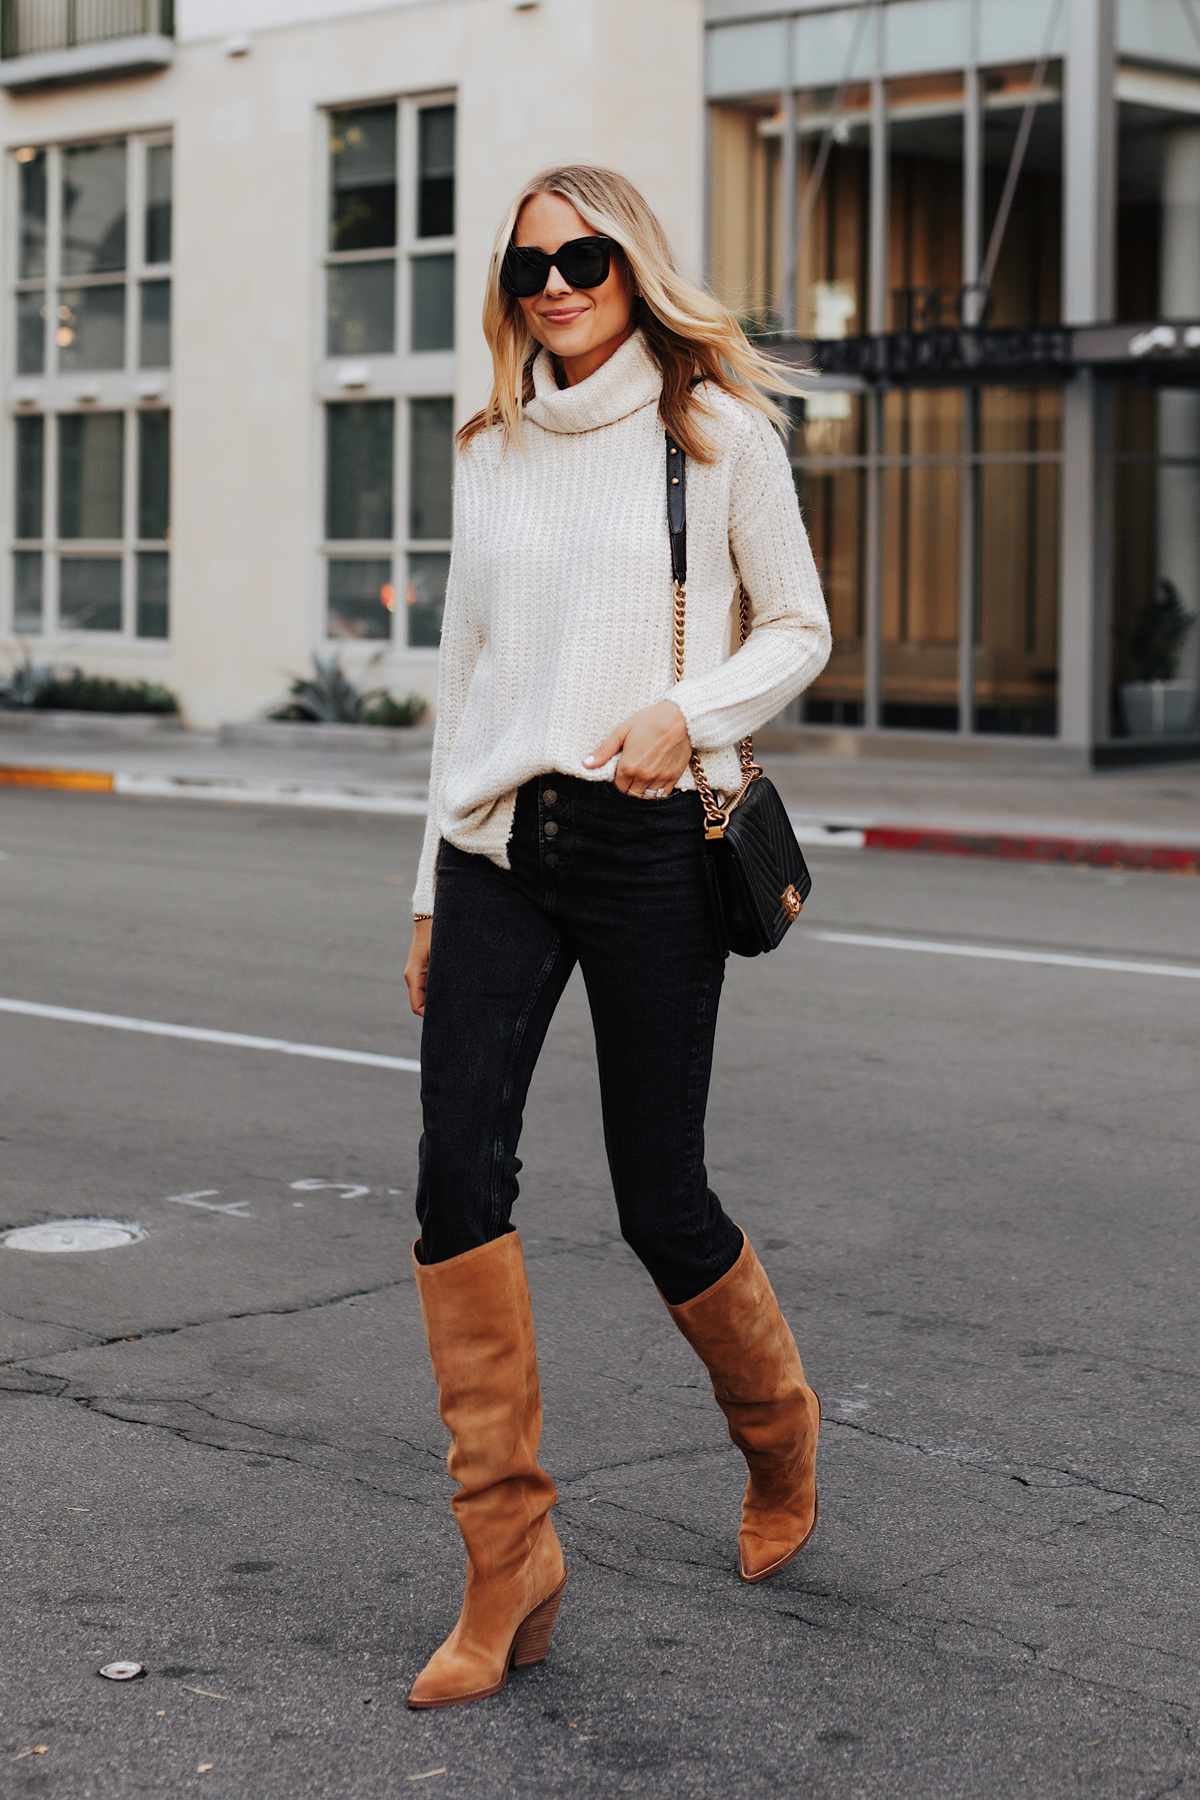 Fashion Jackson Wearing Abercrombie White Turtleneck Sweater Black Jeans Sam Edelman Tan Knee High Boots Fall Outfit 1